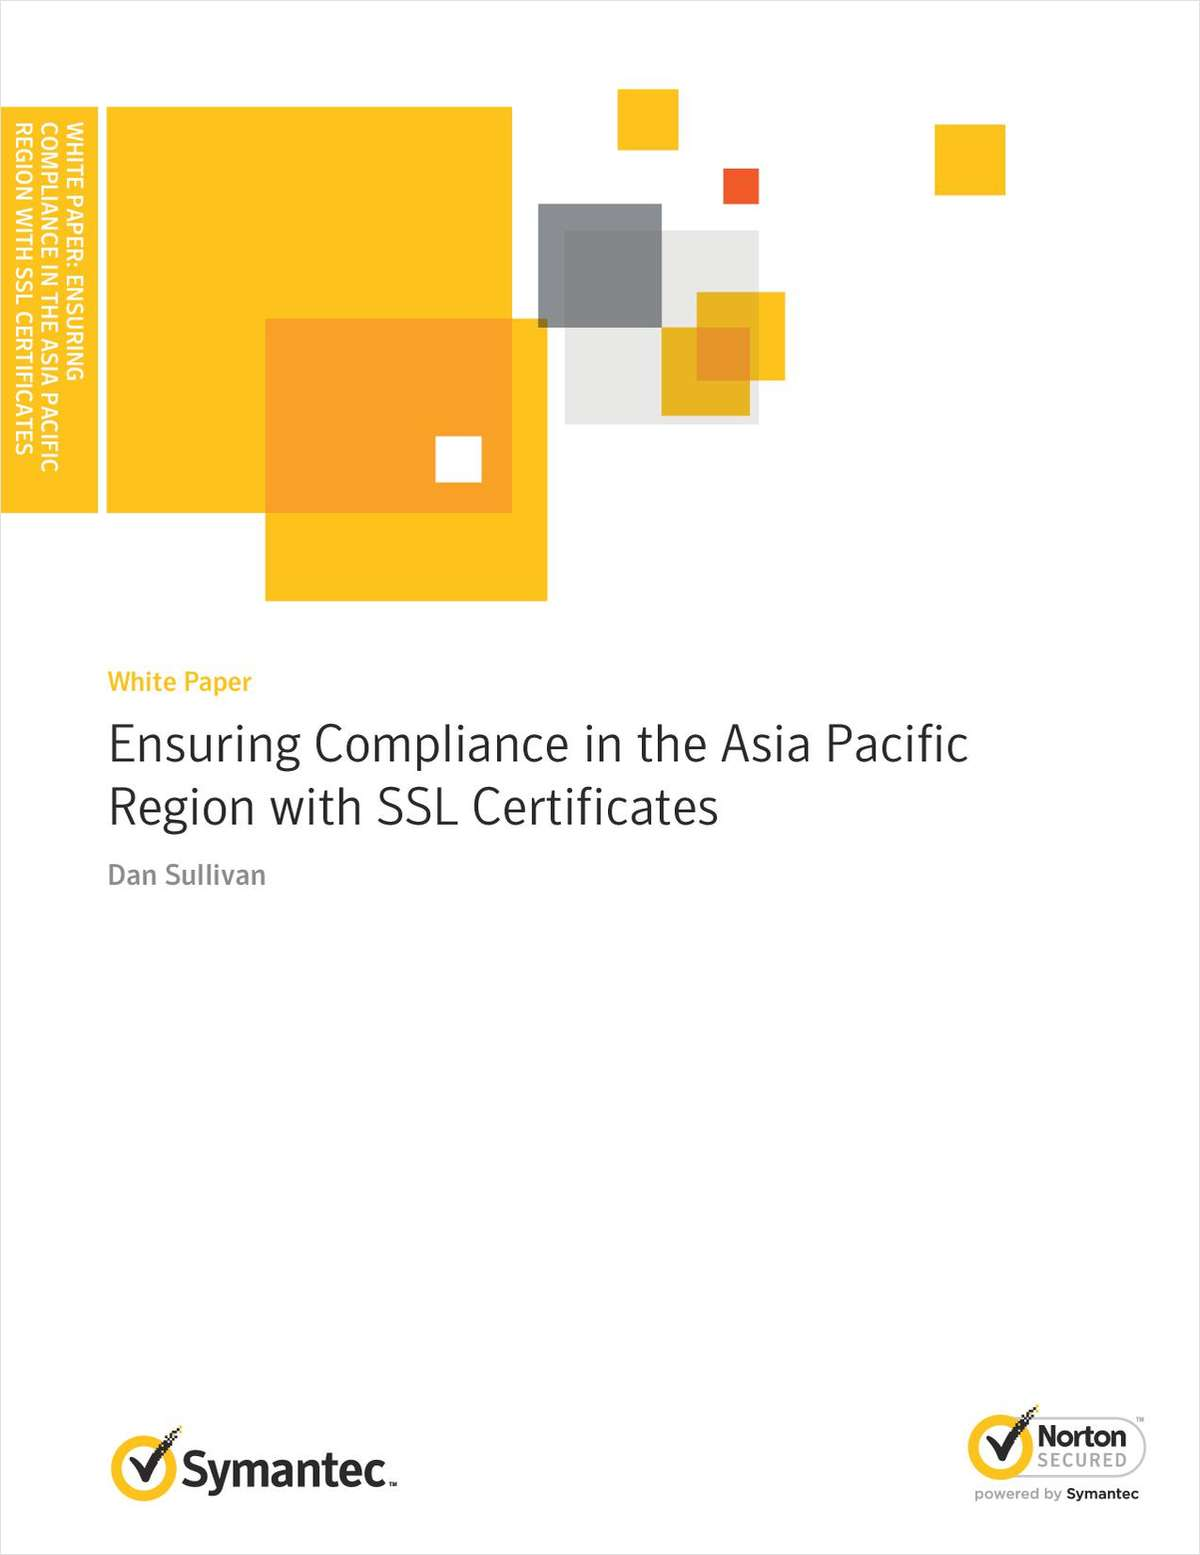 Ensuring Compliance in the Asia Pacific Region with SSL Certificates